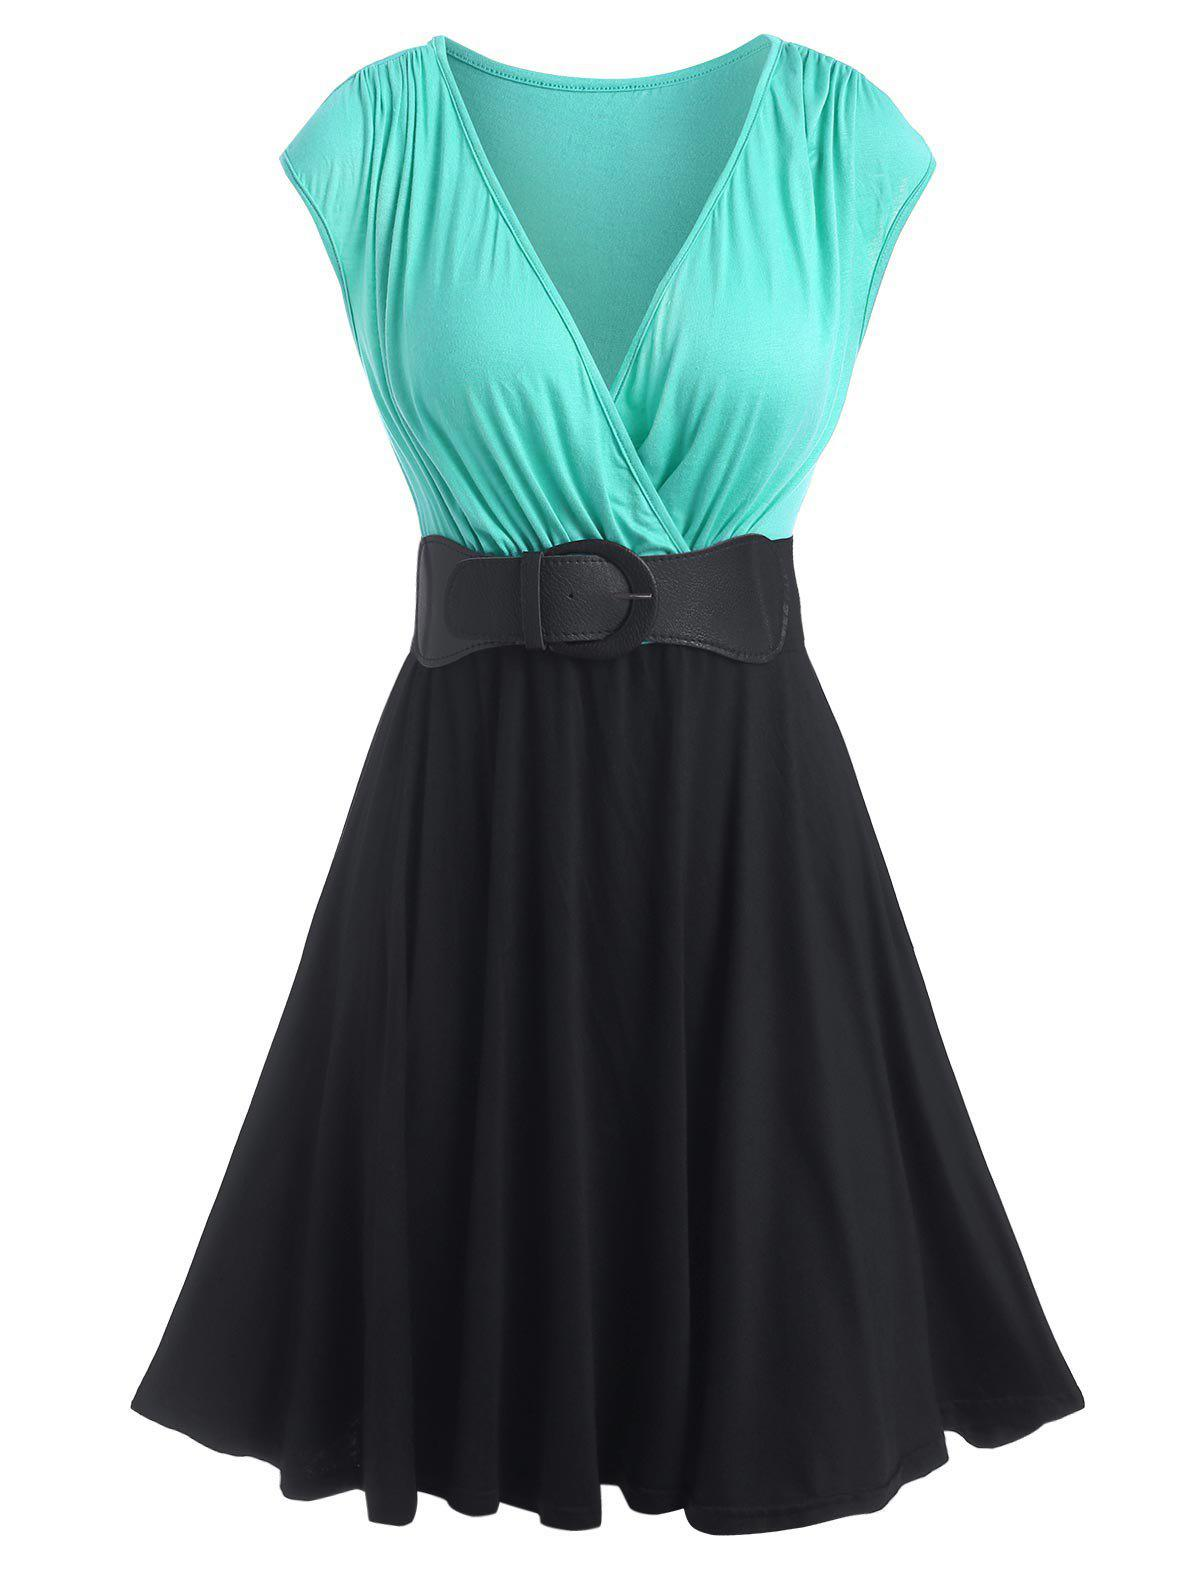 New Cap Sleeve Colorblock Belted Surplice Dress